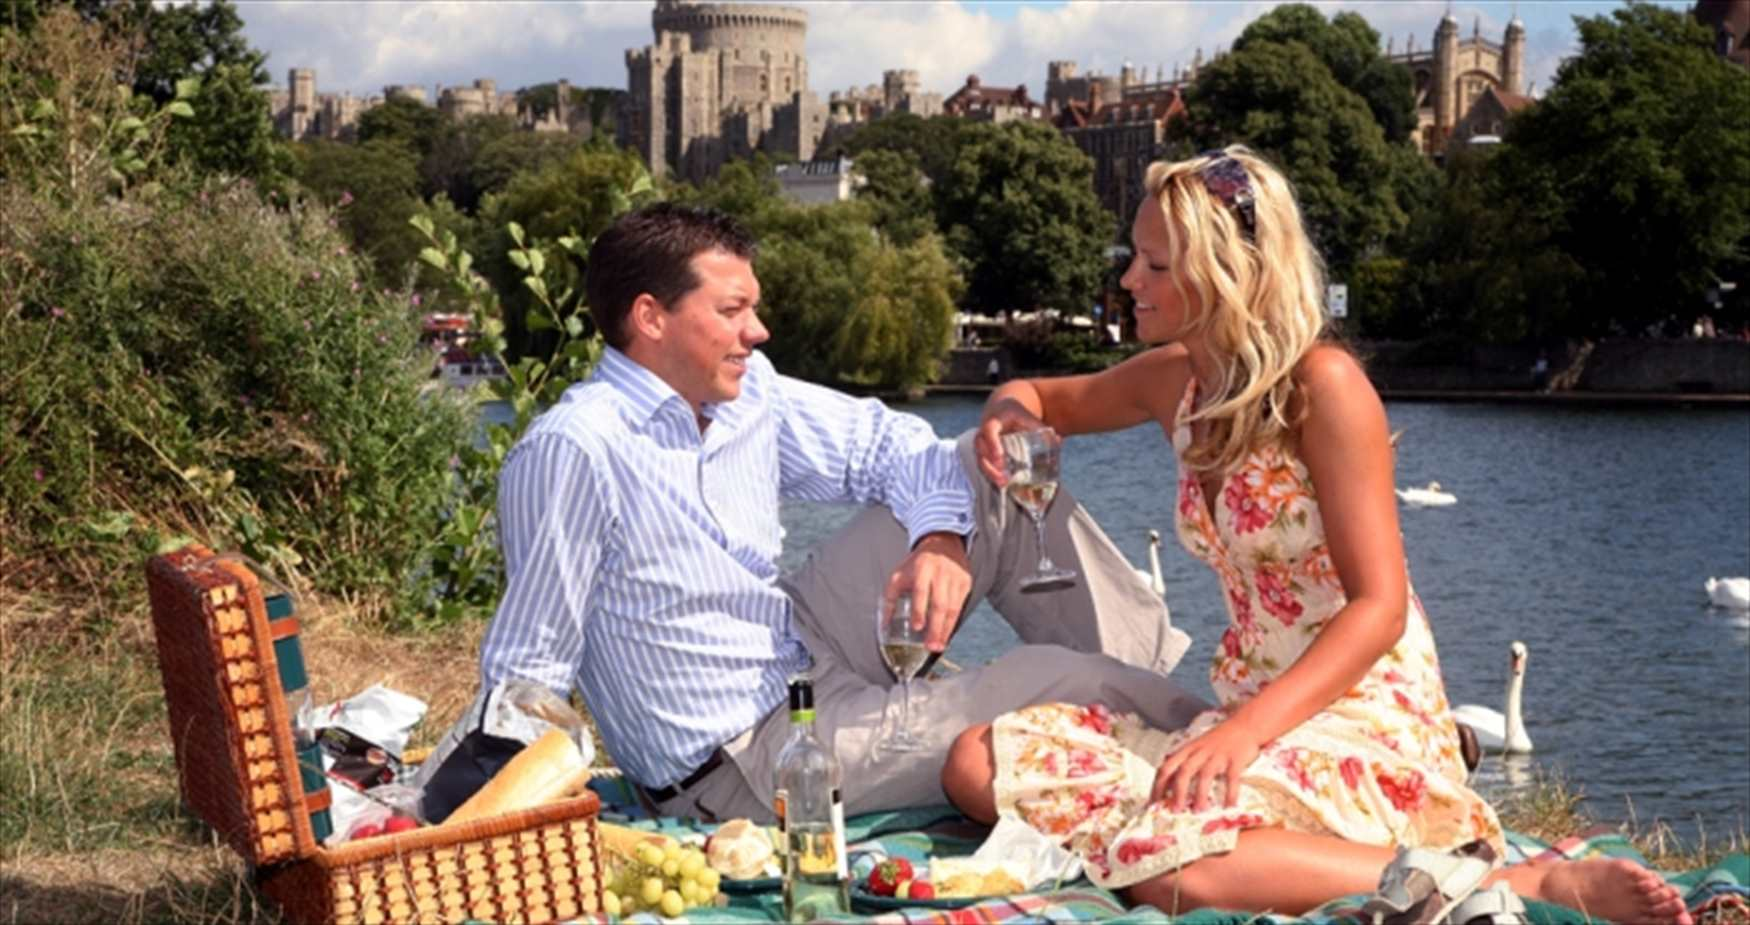 The Couple's River Thames